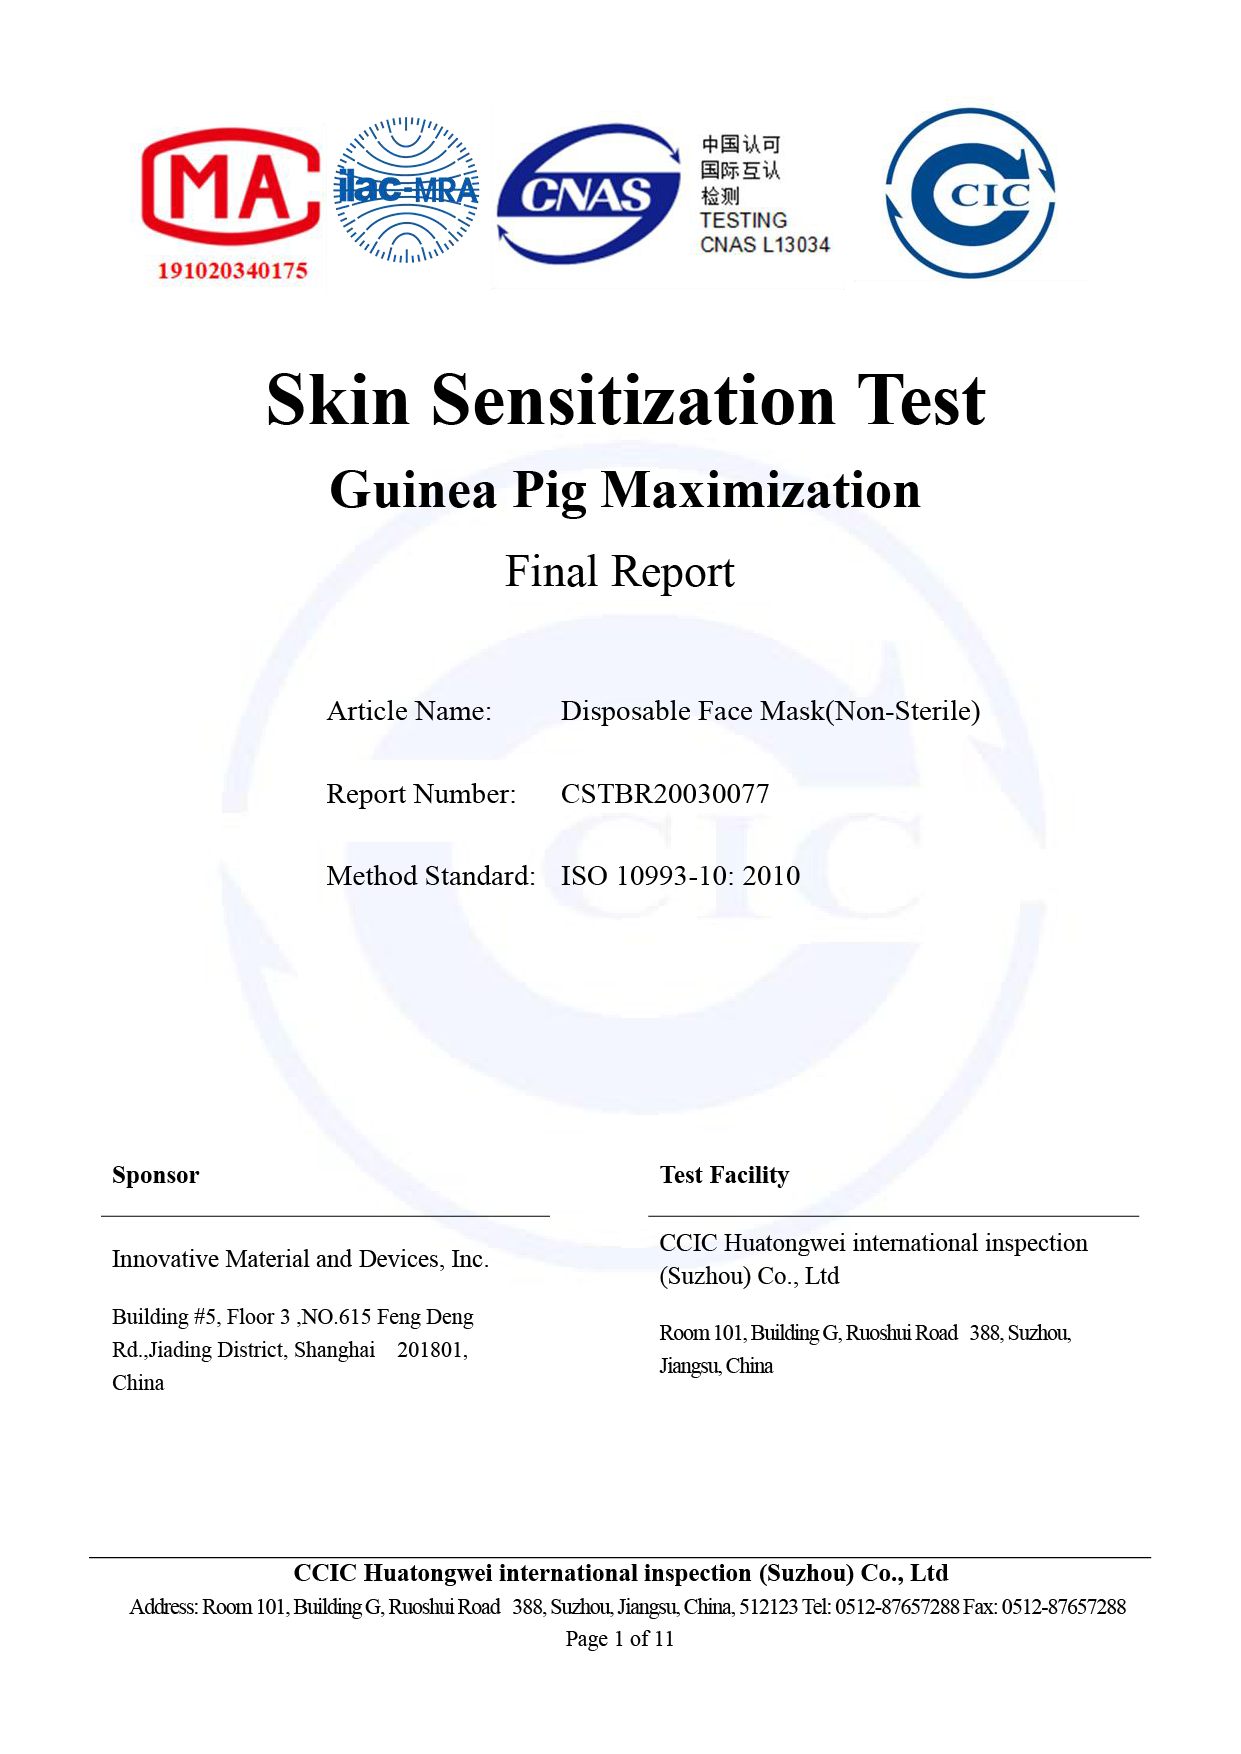 CCIC_IMD Disposable Face Mask(Non-Sterile)_ Skin Sensitization Test Report